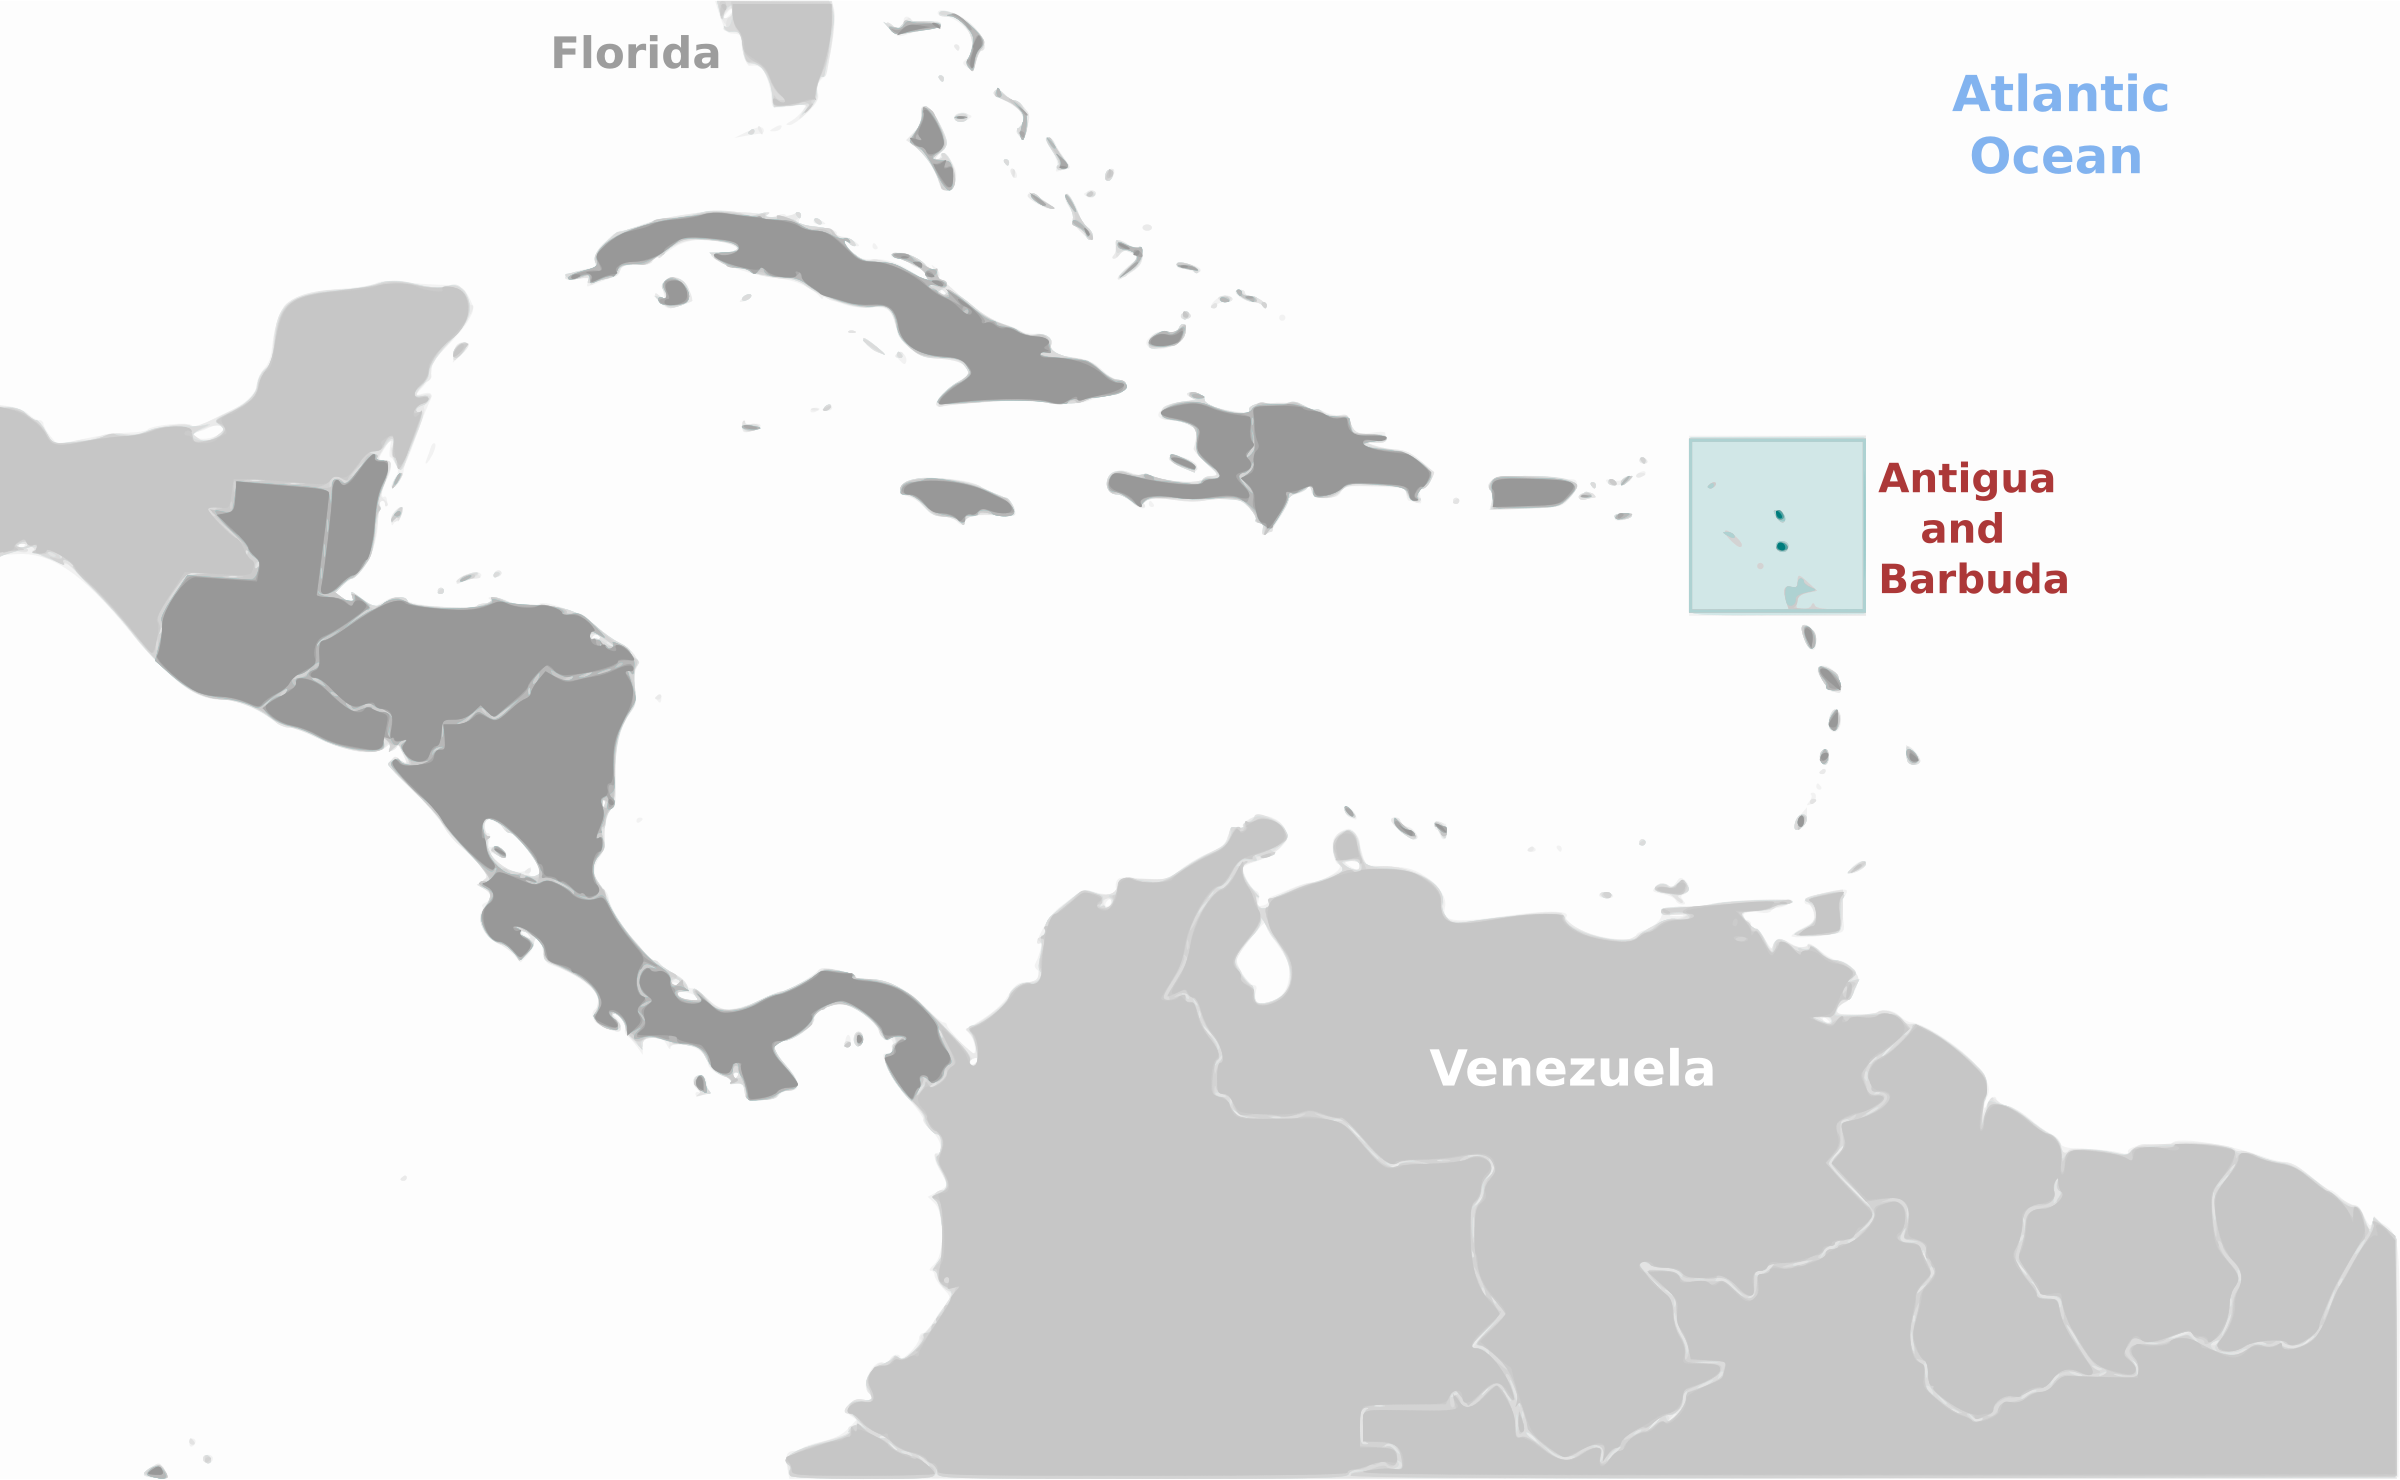 Antigua and Barbuda location label by wpclipart